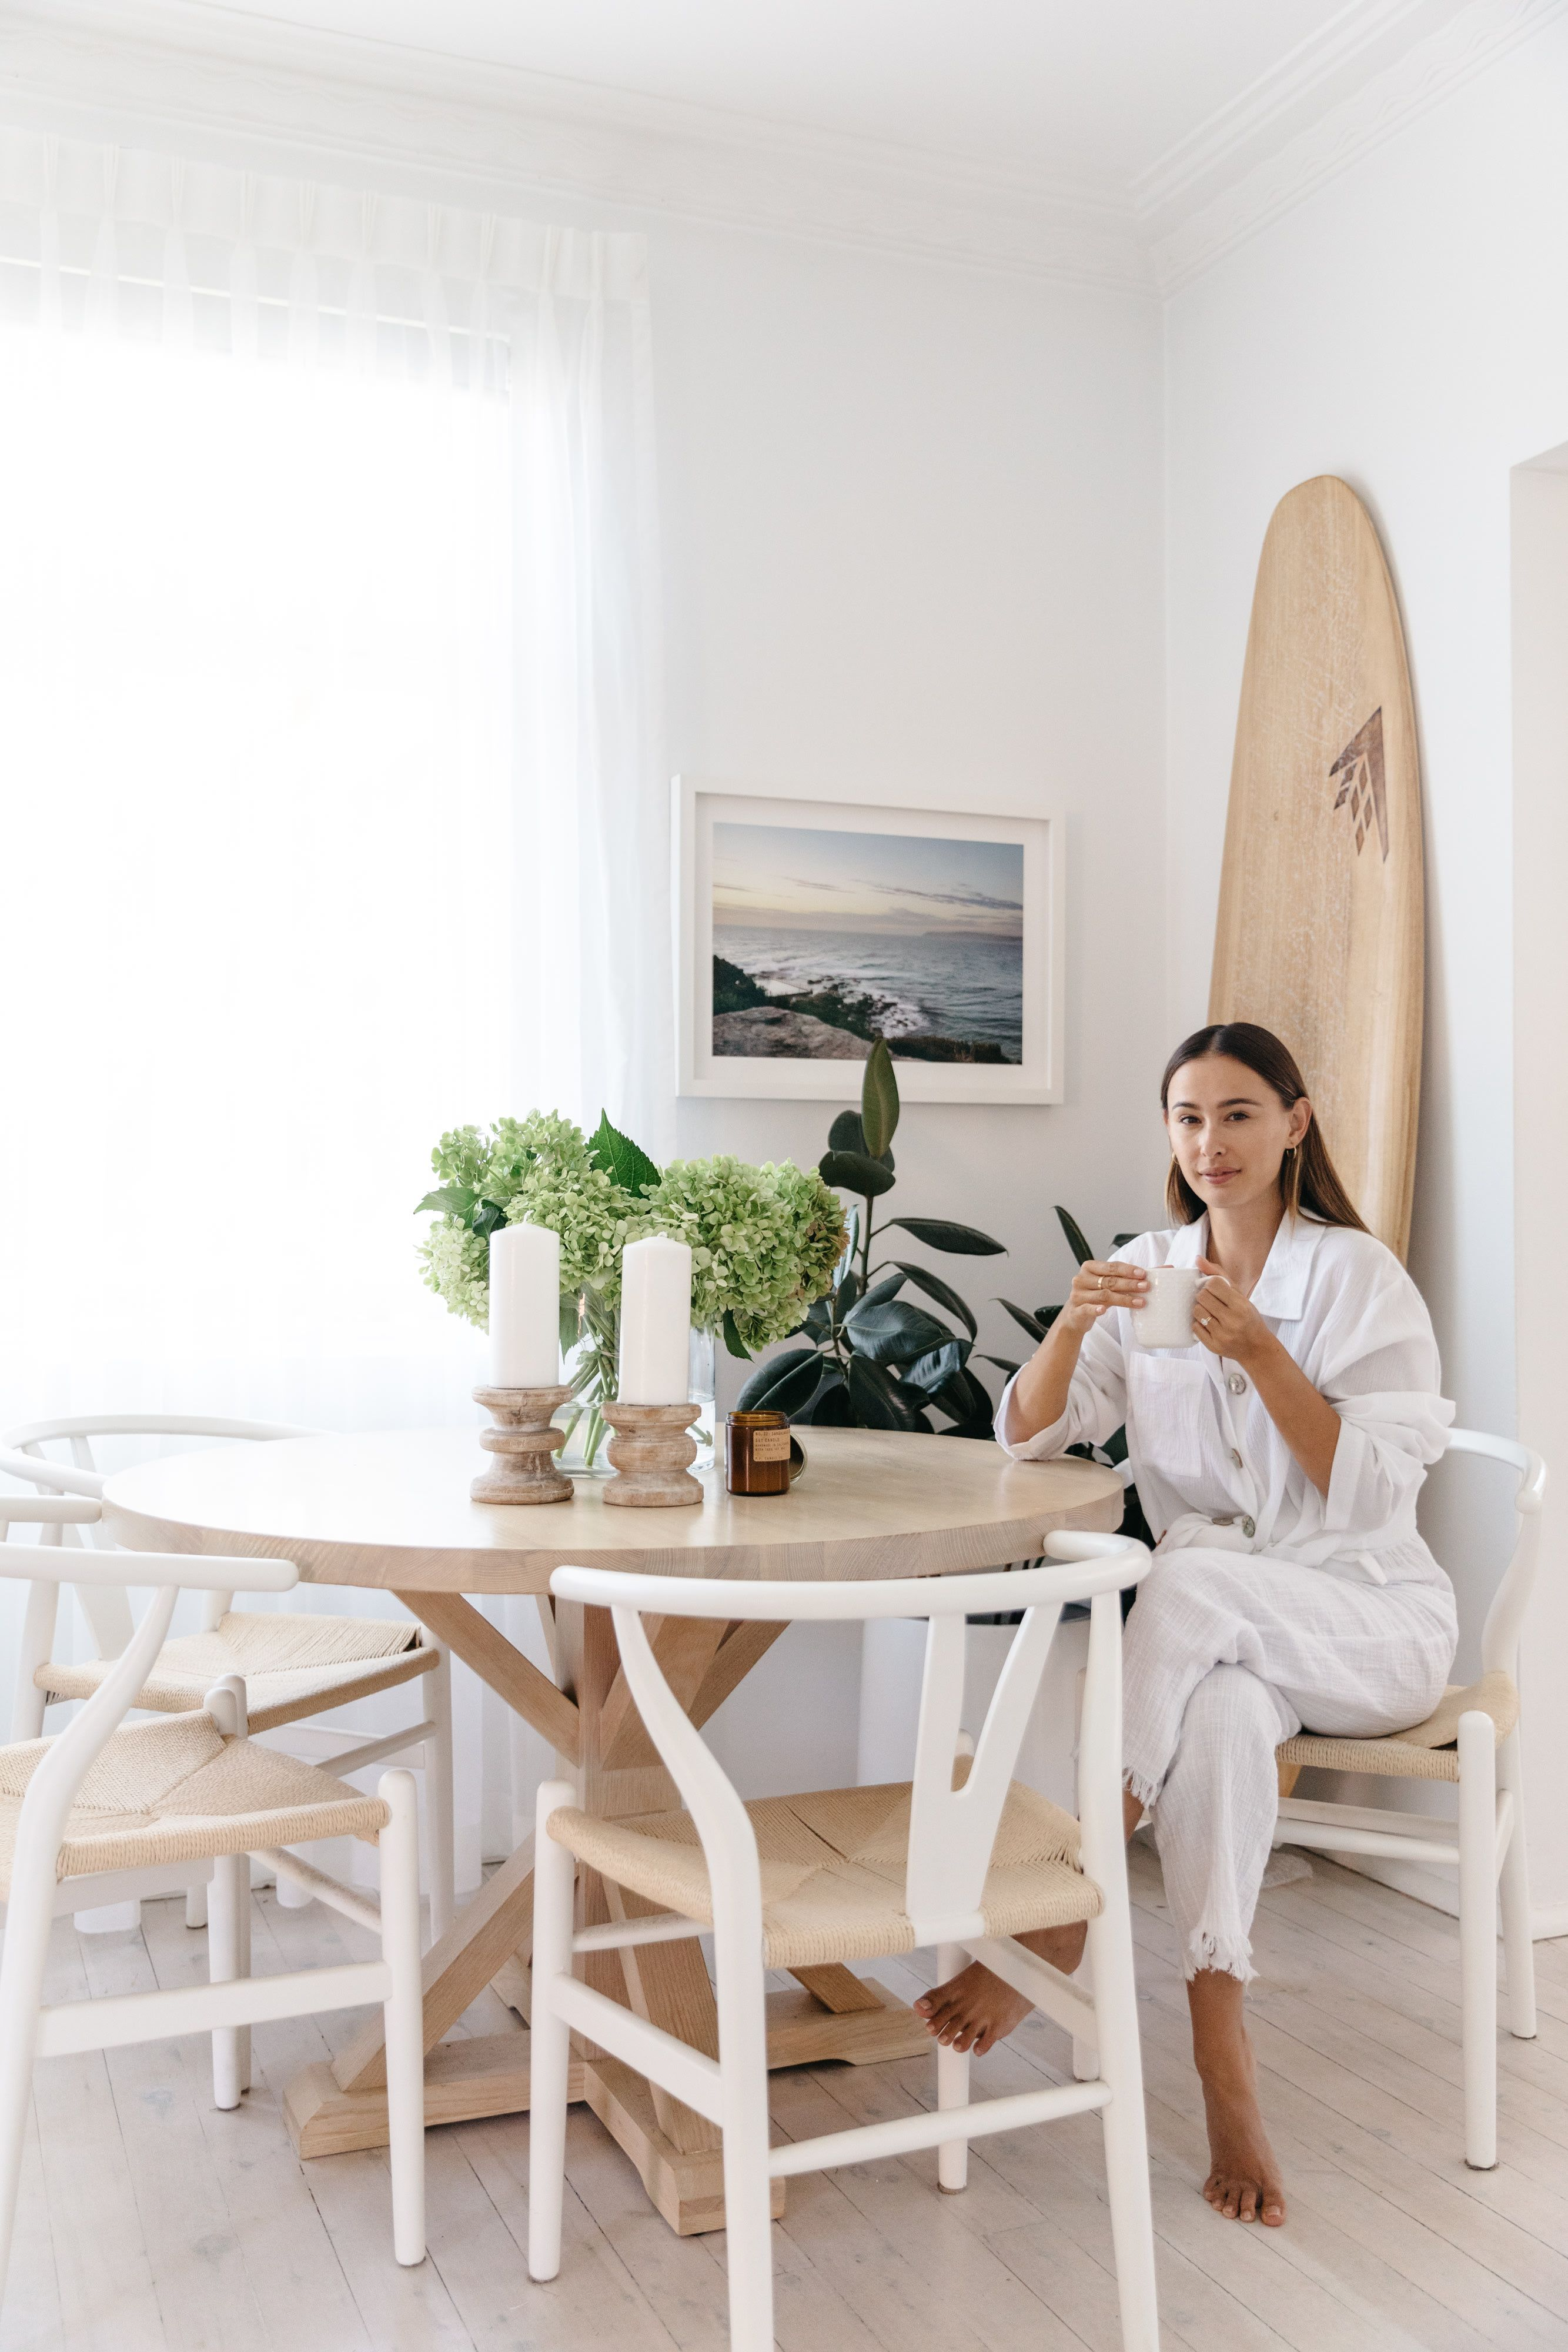 Beauty Editor Eleanor Pendleton's Serene Australian Home Is a Lesson in Minimalism